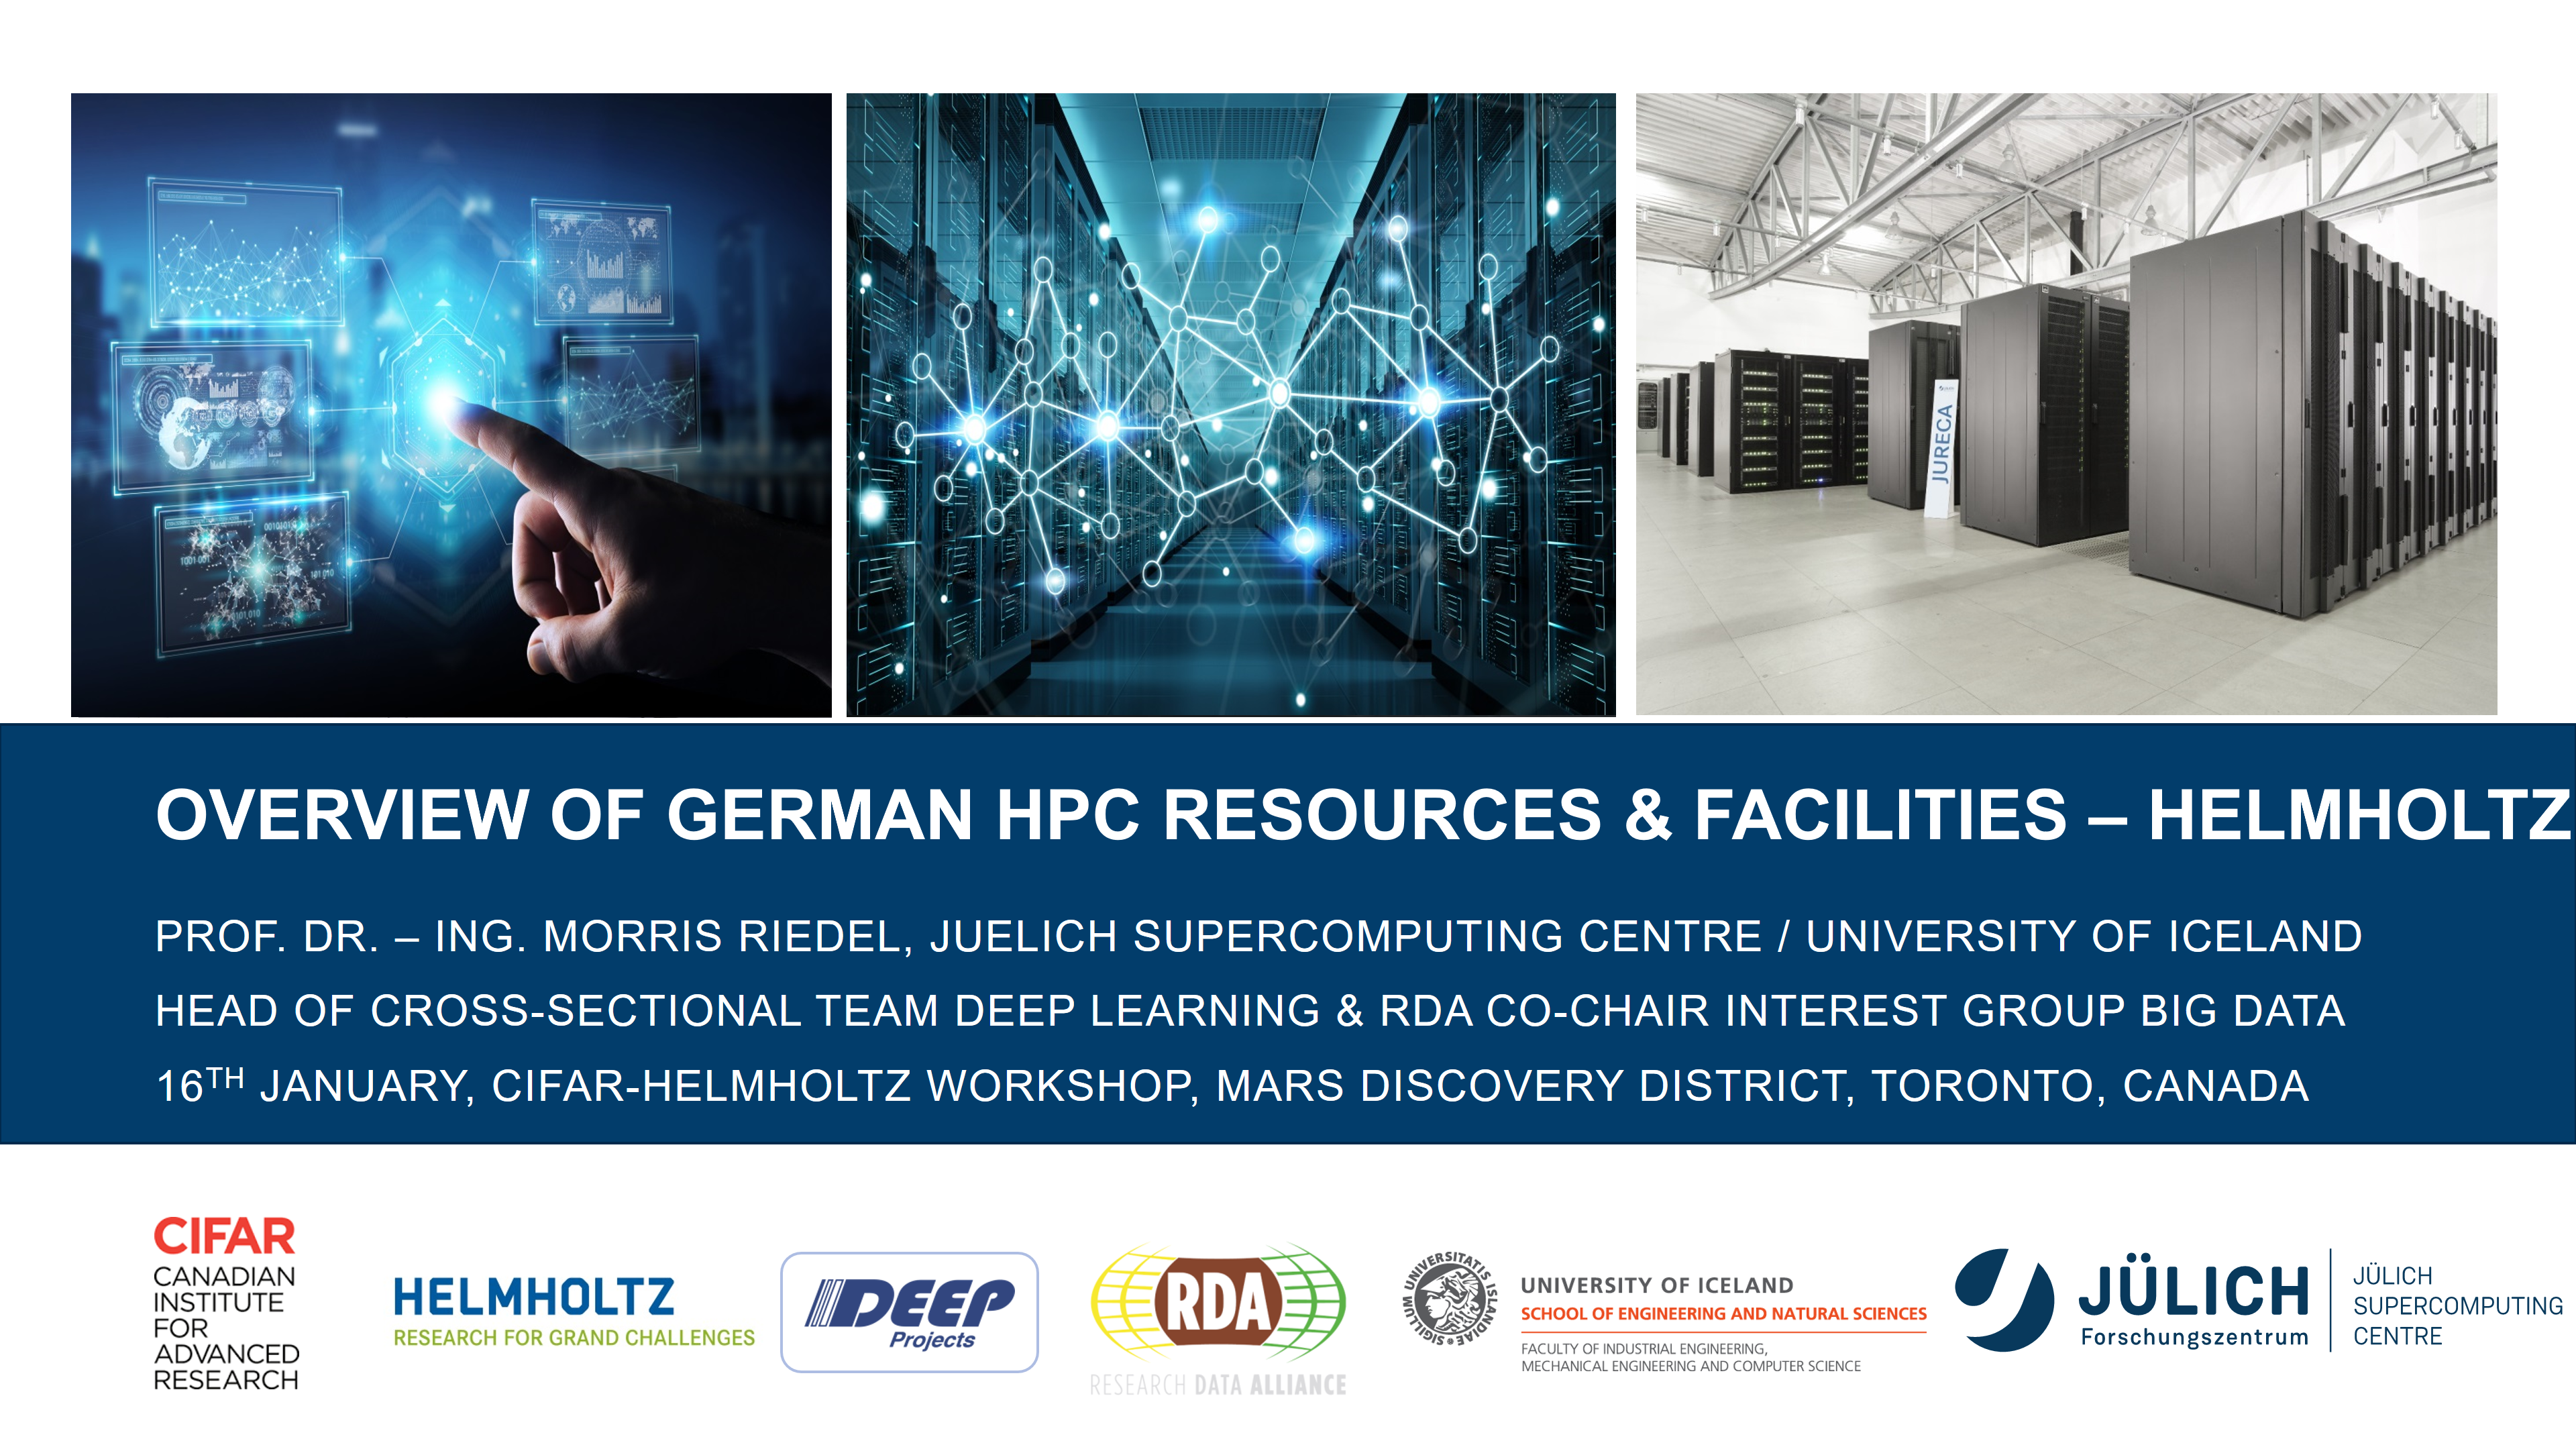 Overview of German HPC Resources and Facilities - Helmholtz